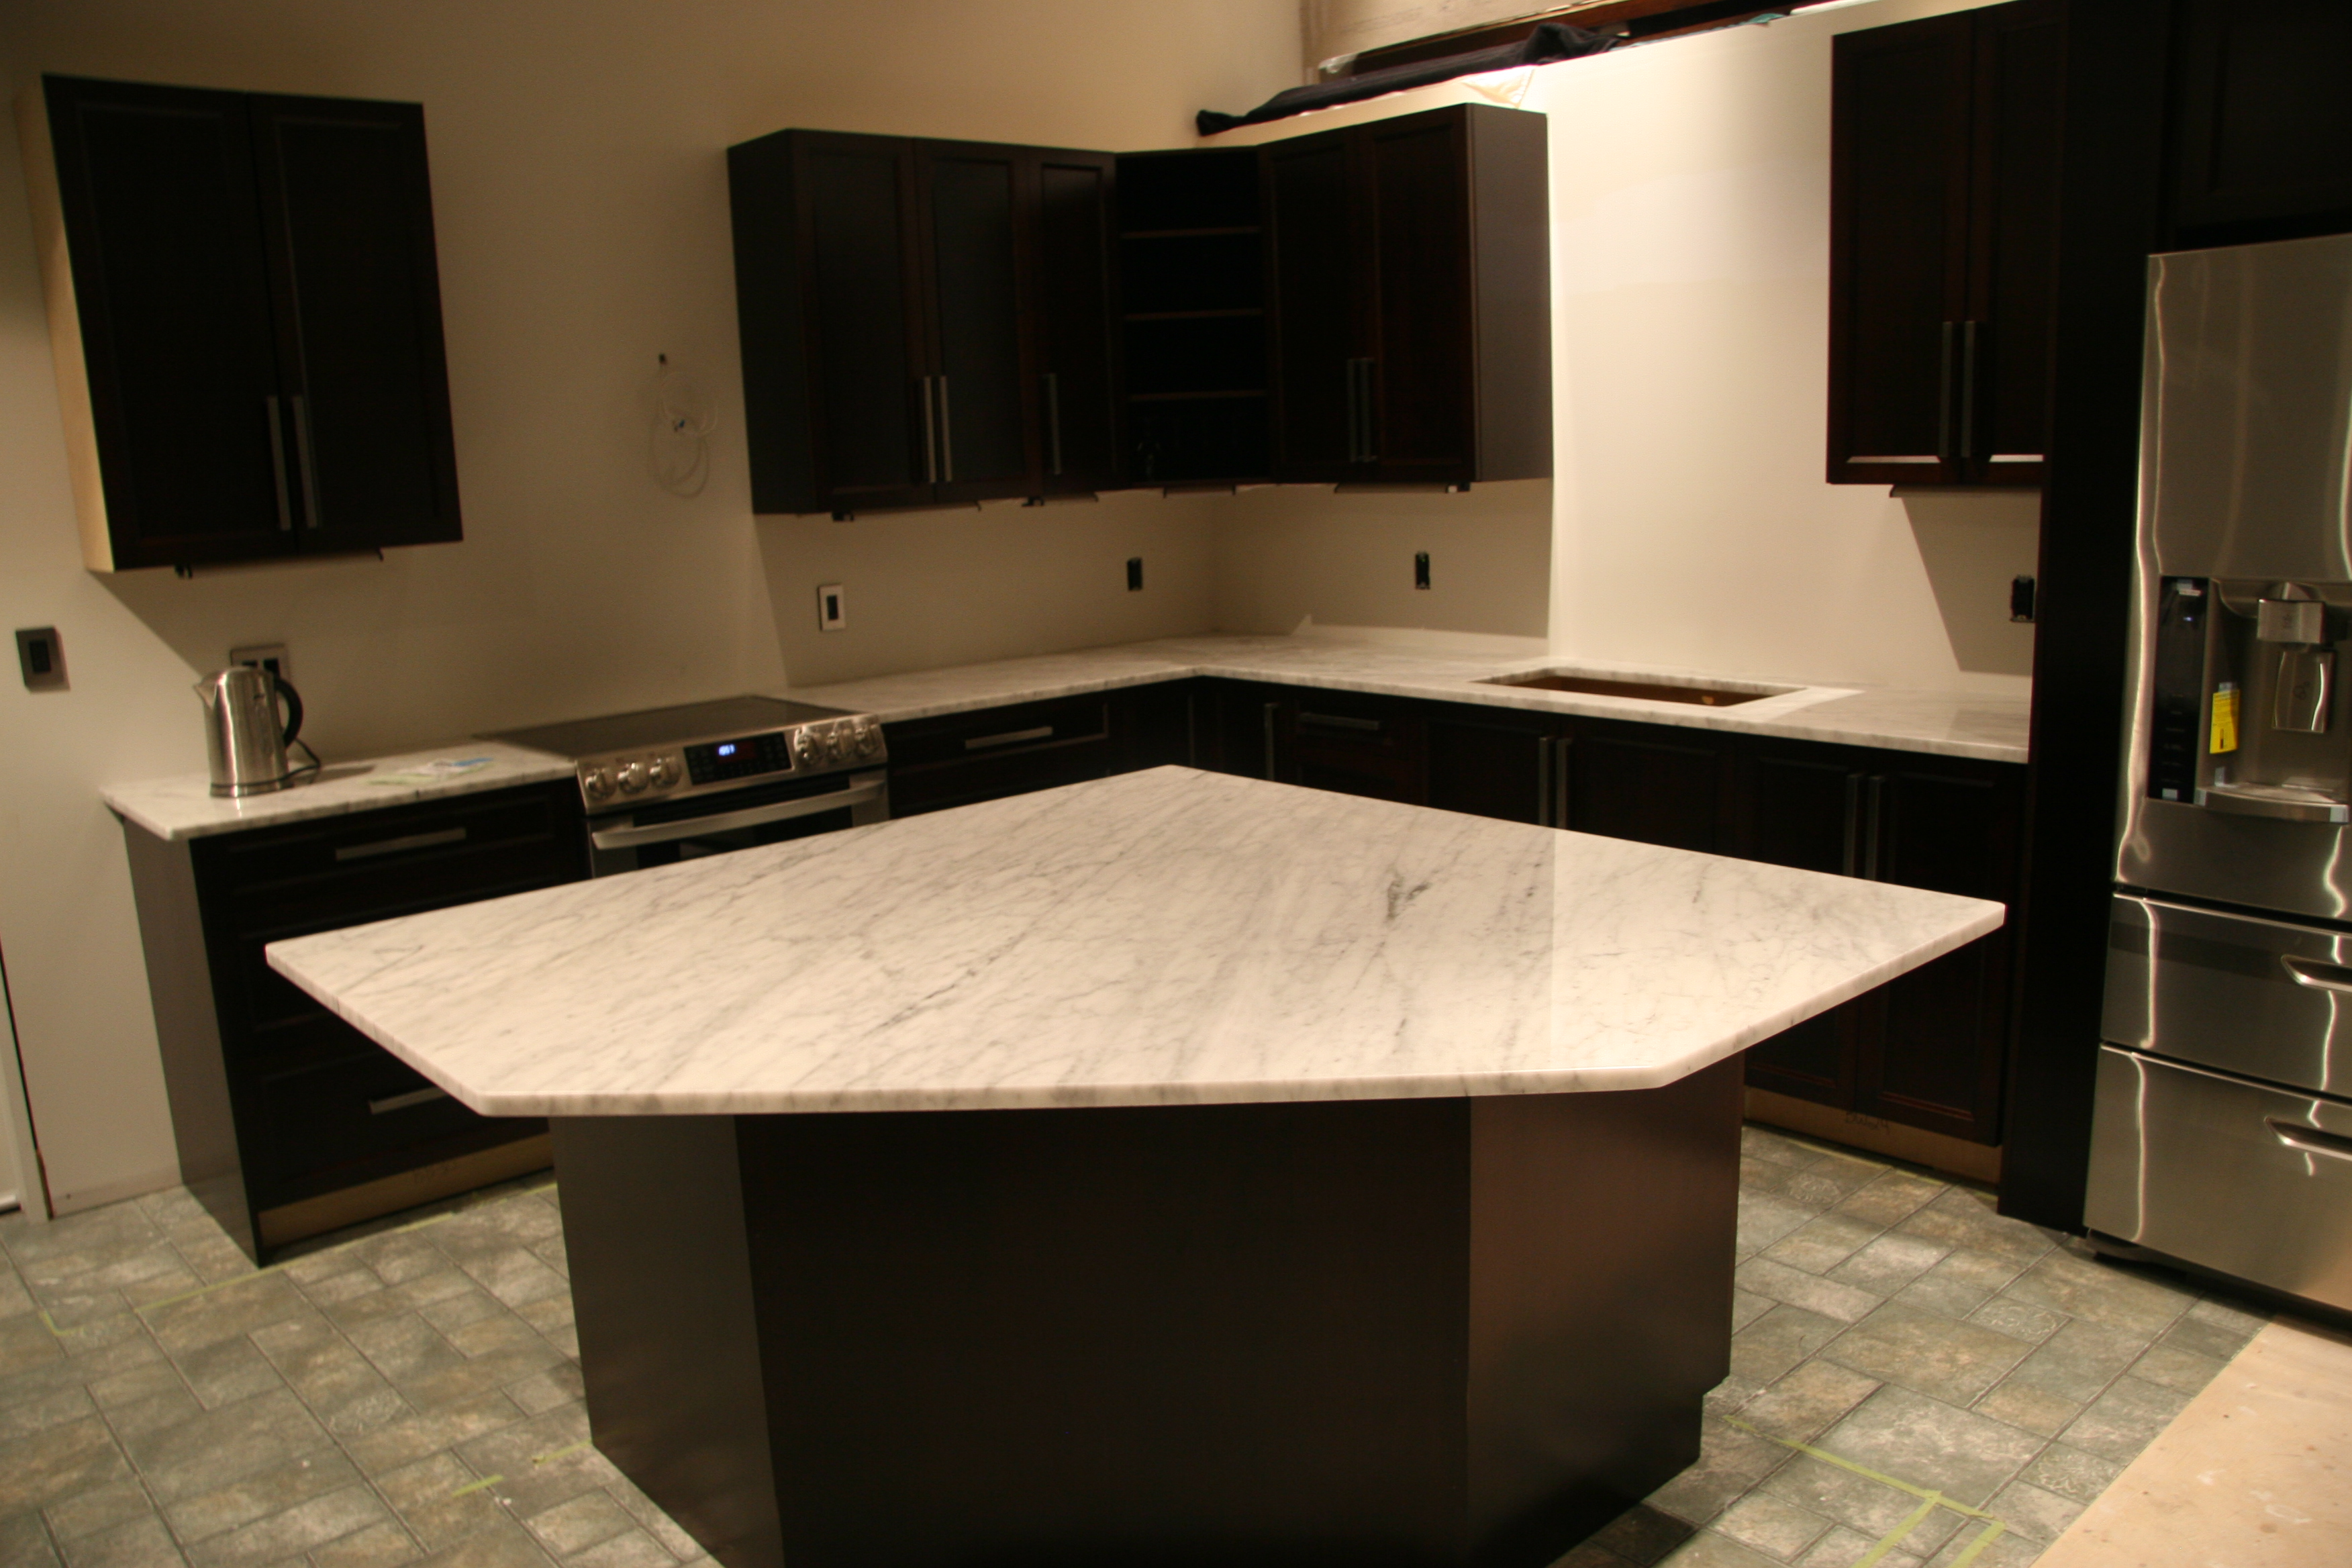 installation a kitchen star how for countertops inc to prepare stone your five countertop